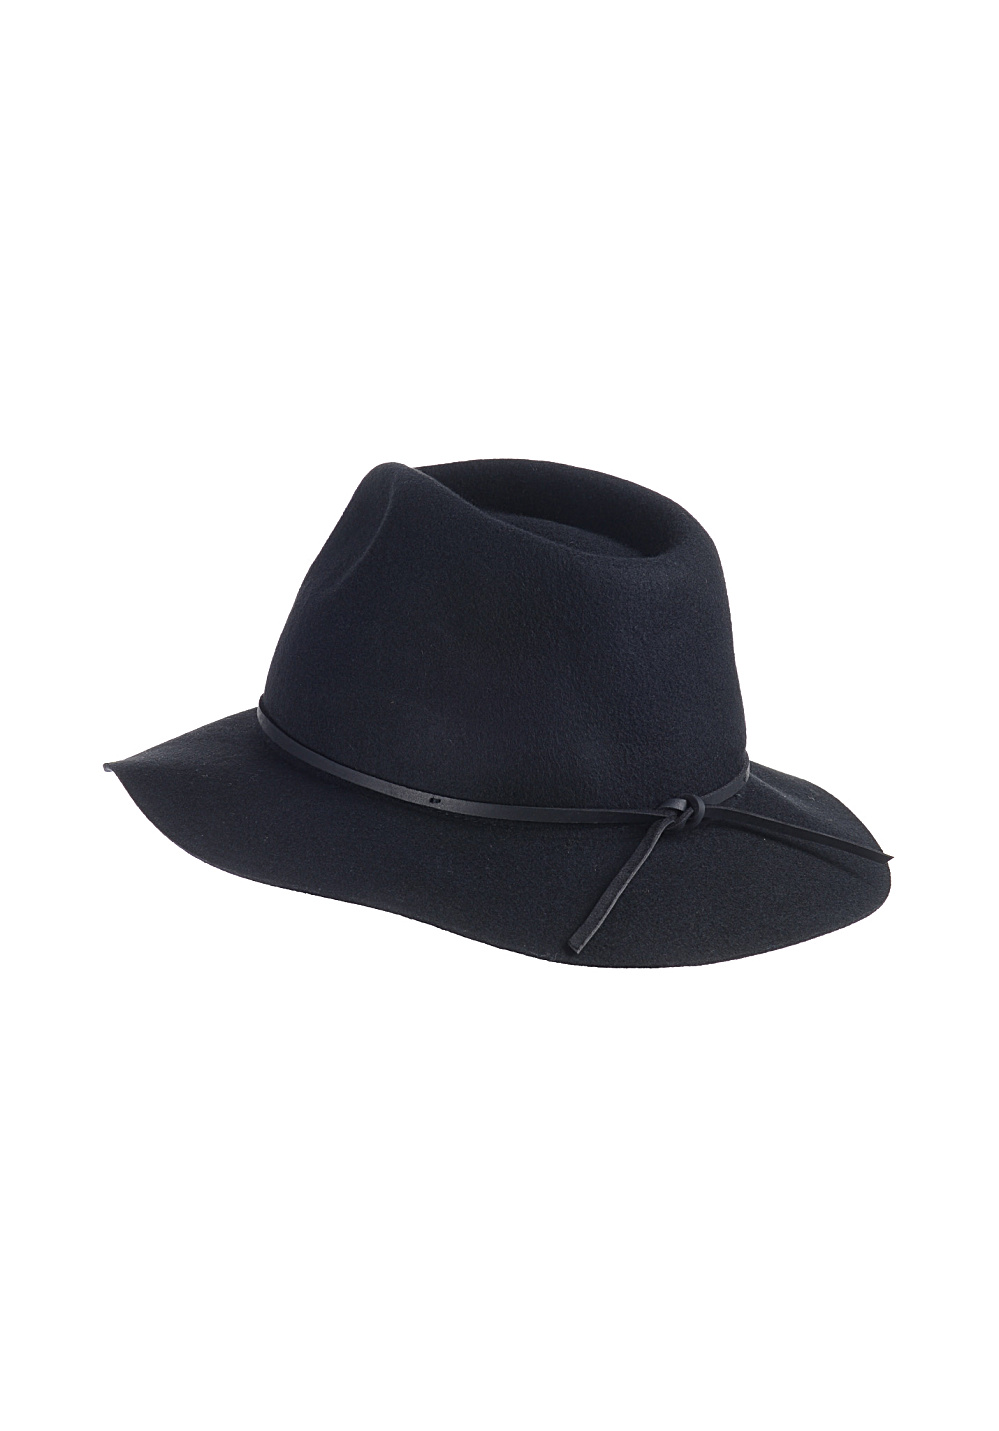 8d97887a BRIXTON Wesley Fedora - Hat - Black - Planet Sports